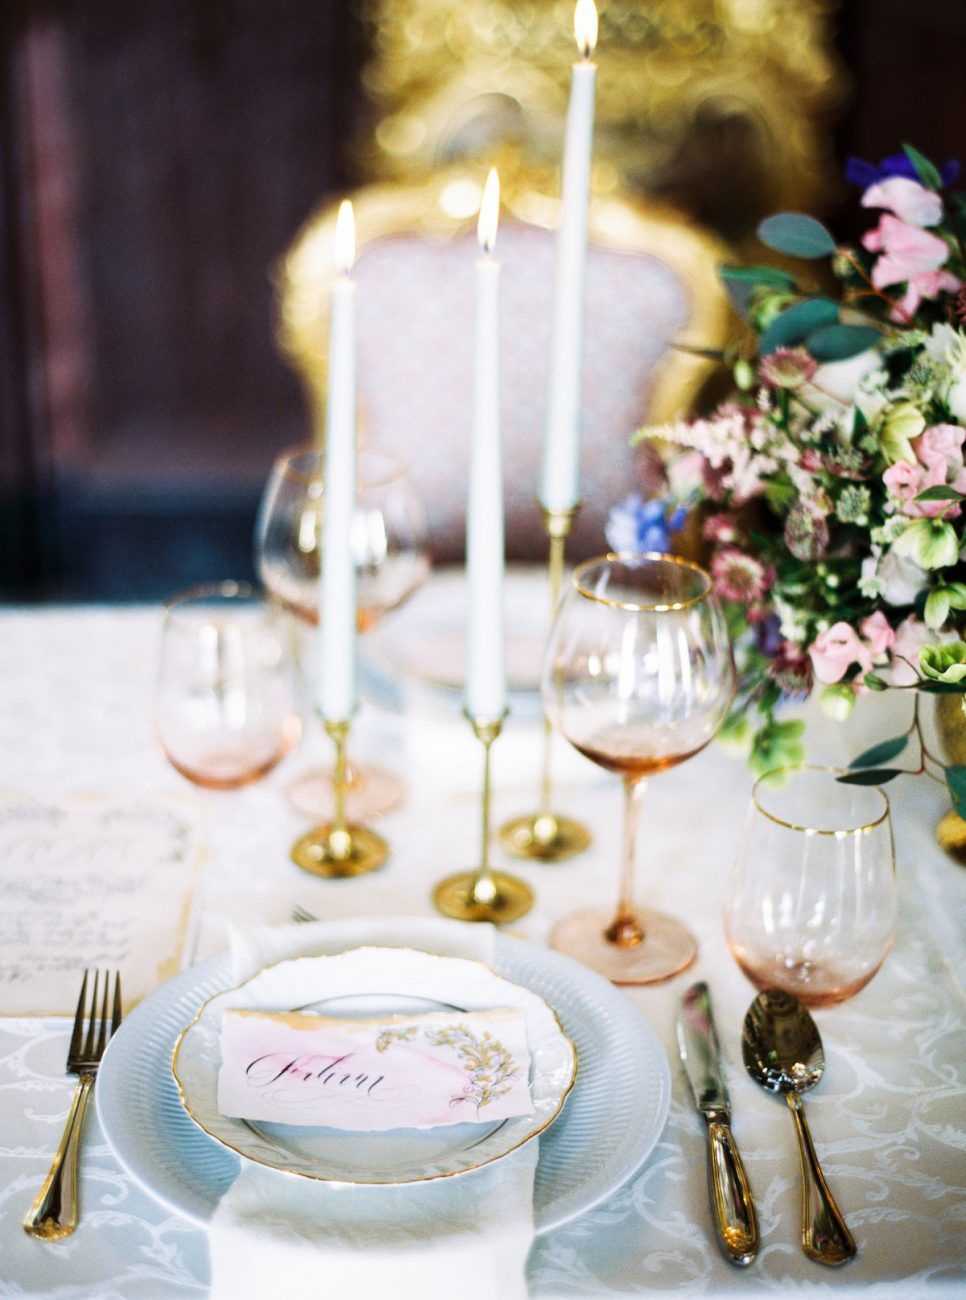 Hand Painted Wedding Invitations place names on a table setting